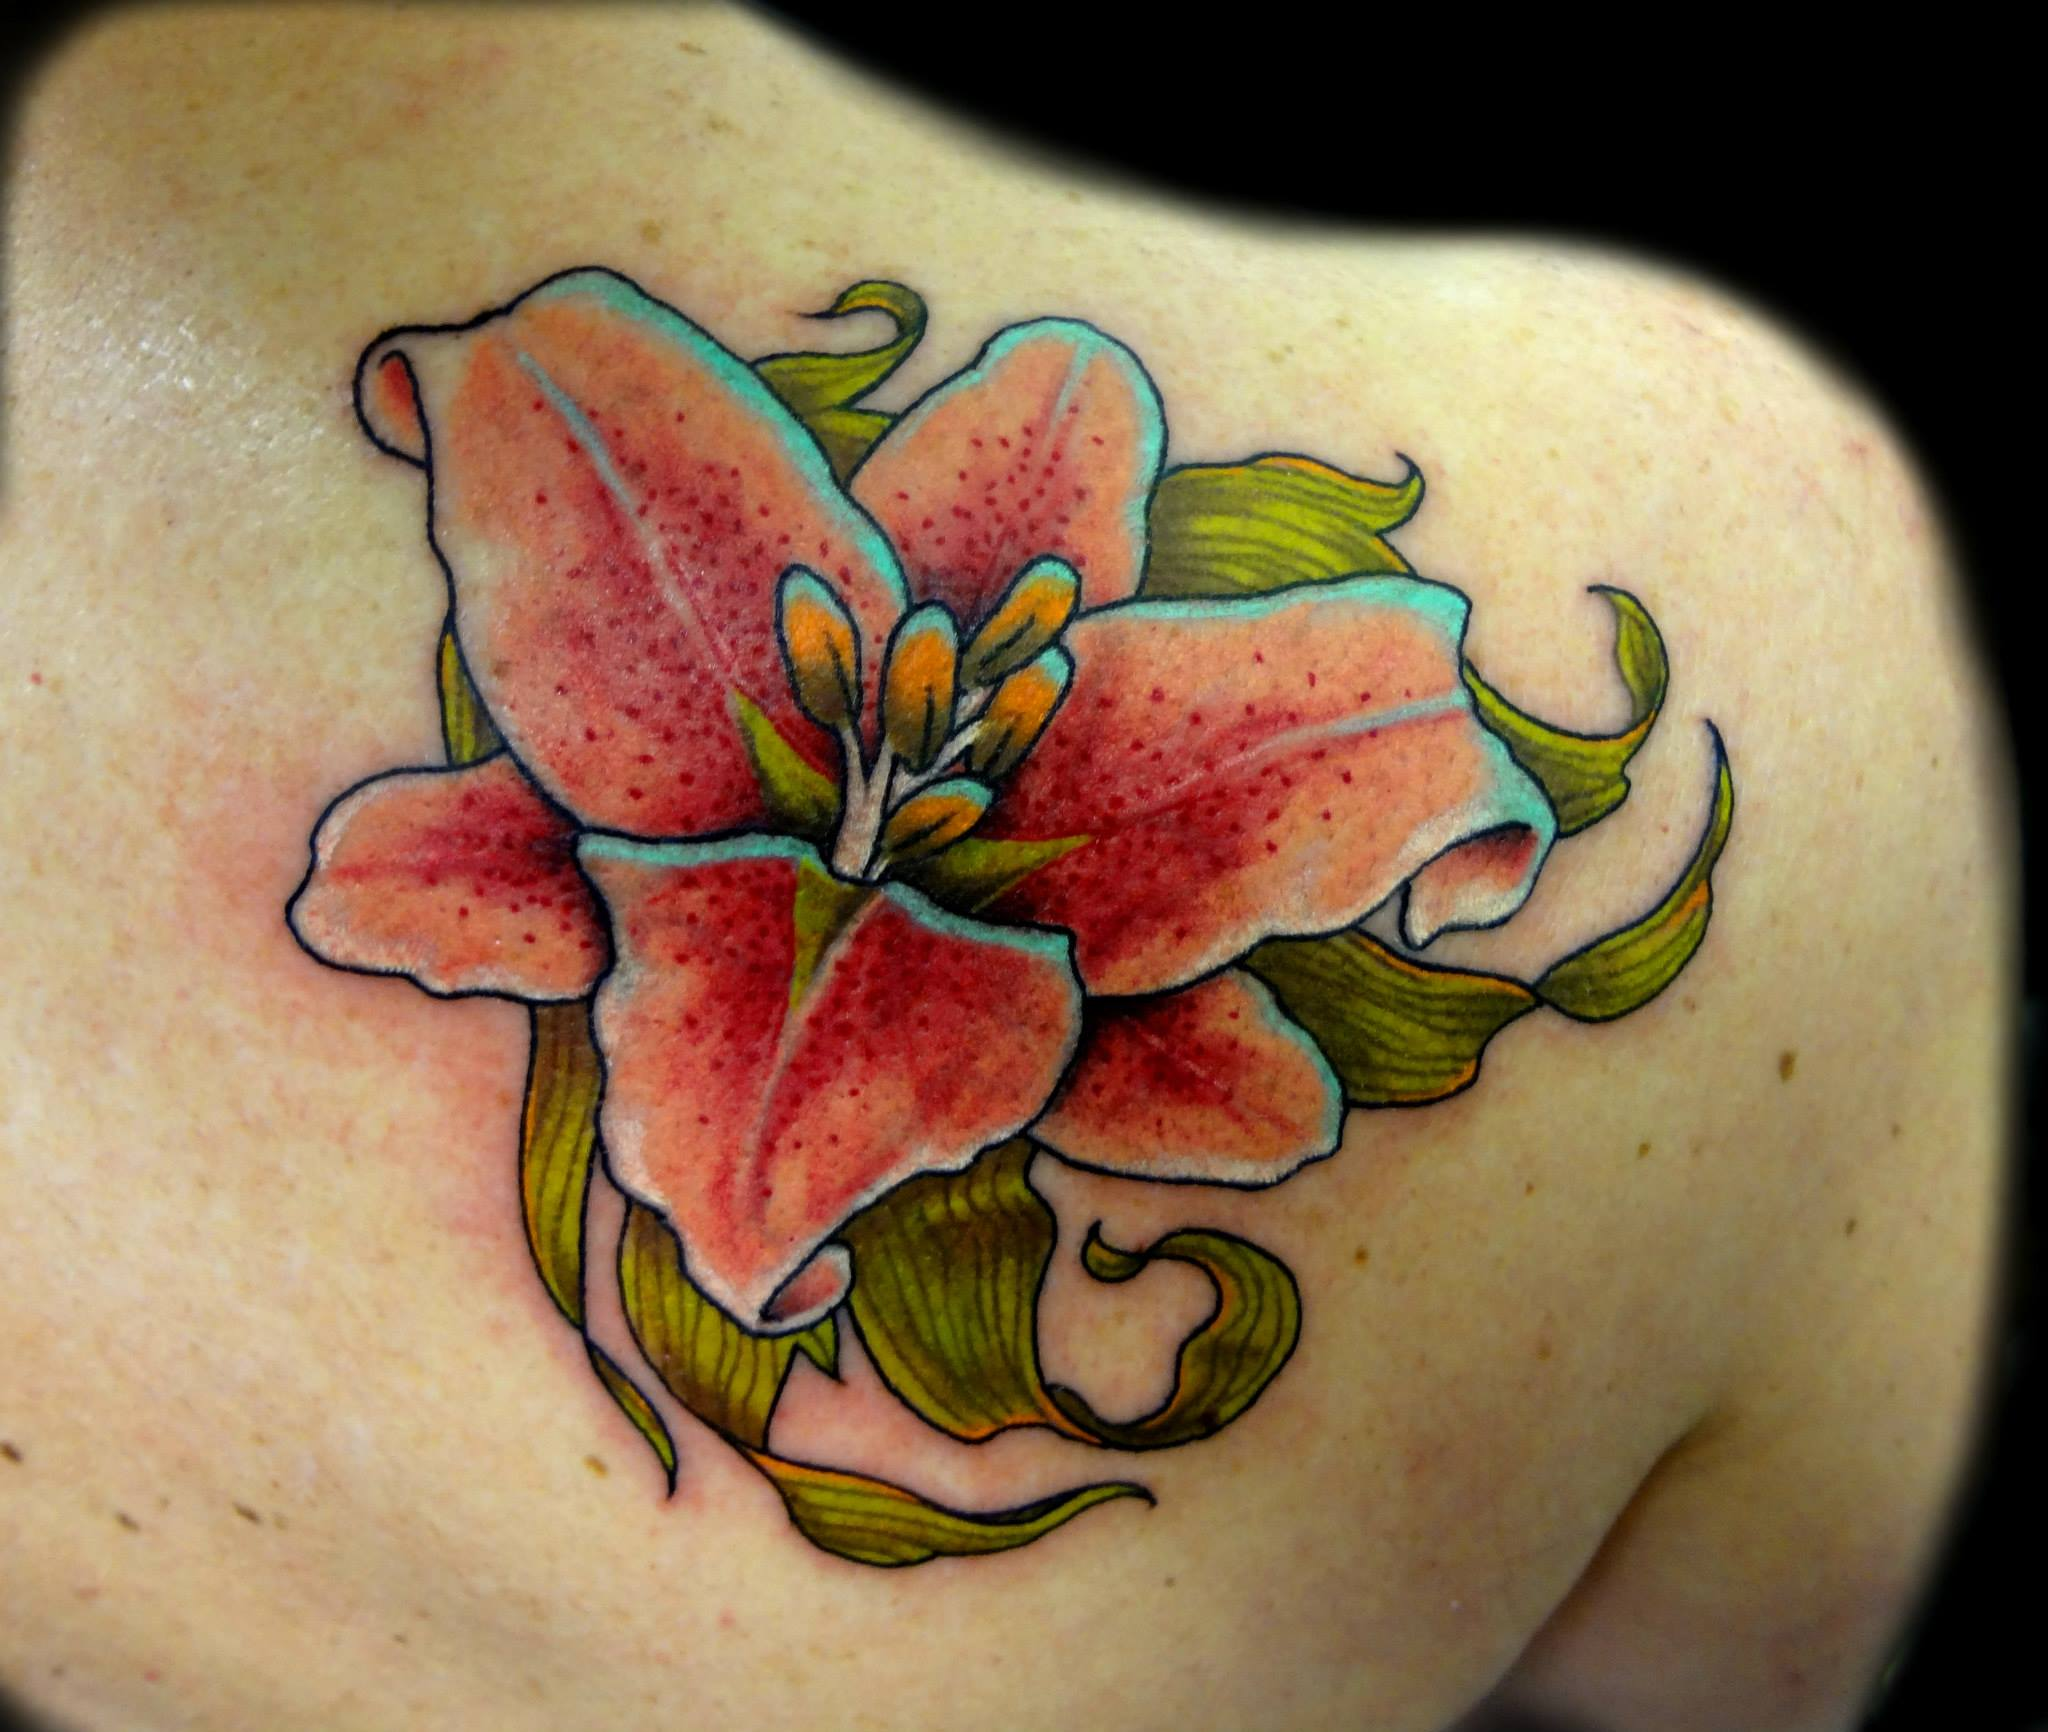 lilly - right shoulder